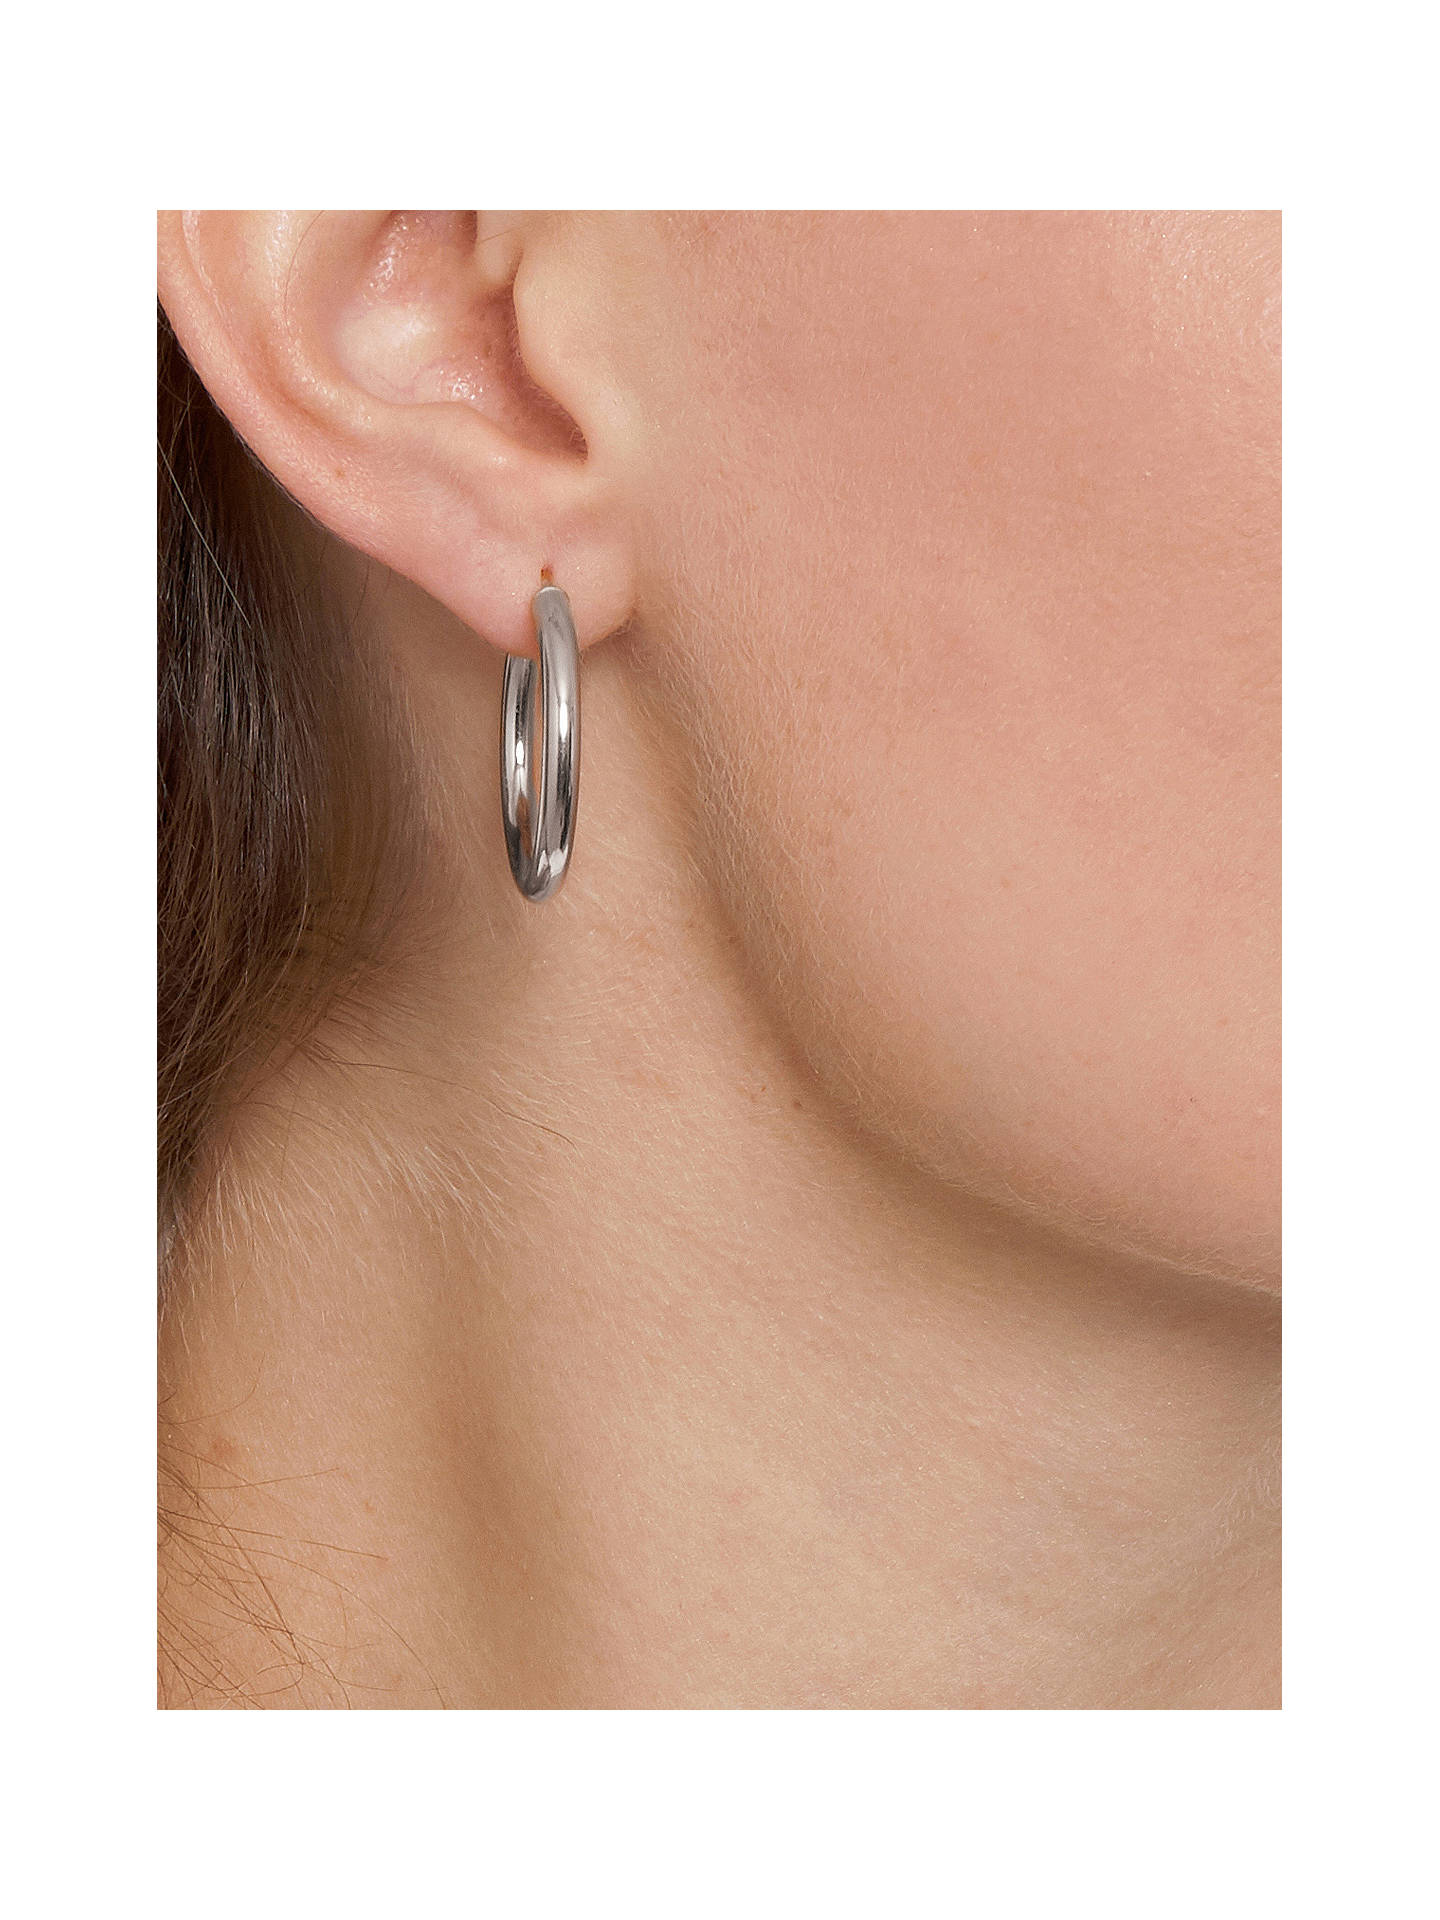 BuyThe Hoop Station La Napoli Medium Hoop Earrings, Silver Online at johnlewis.com